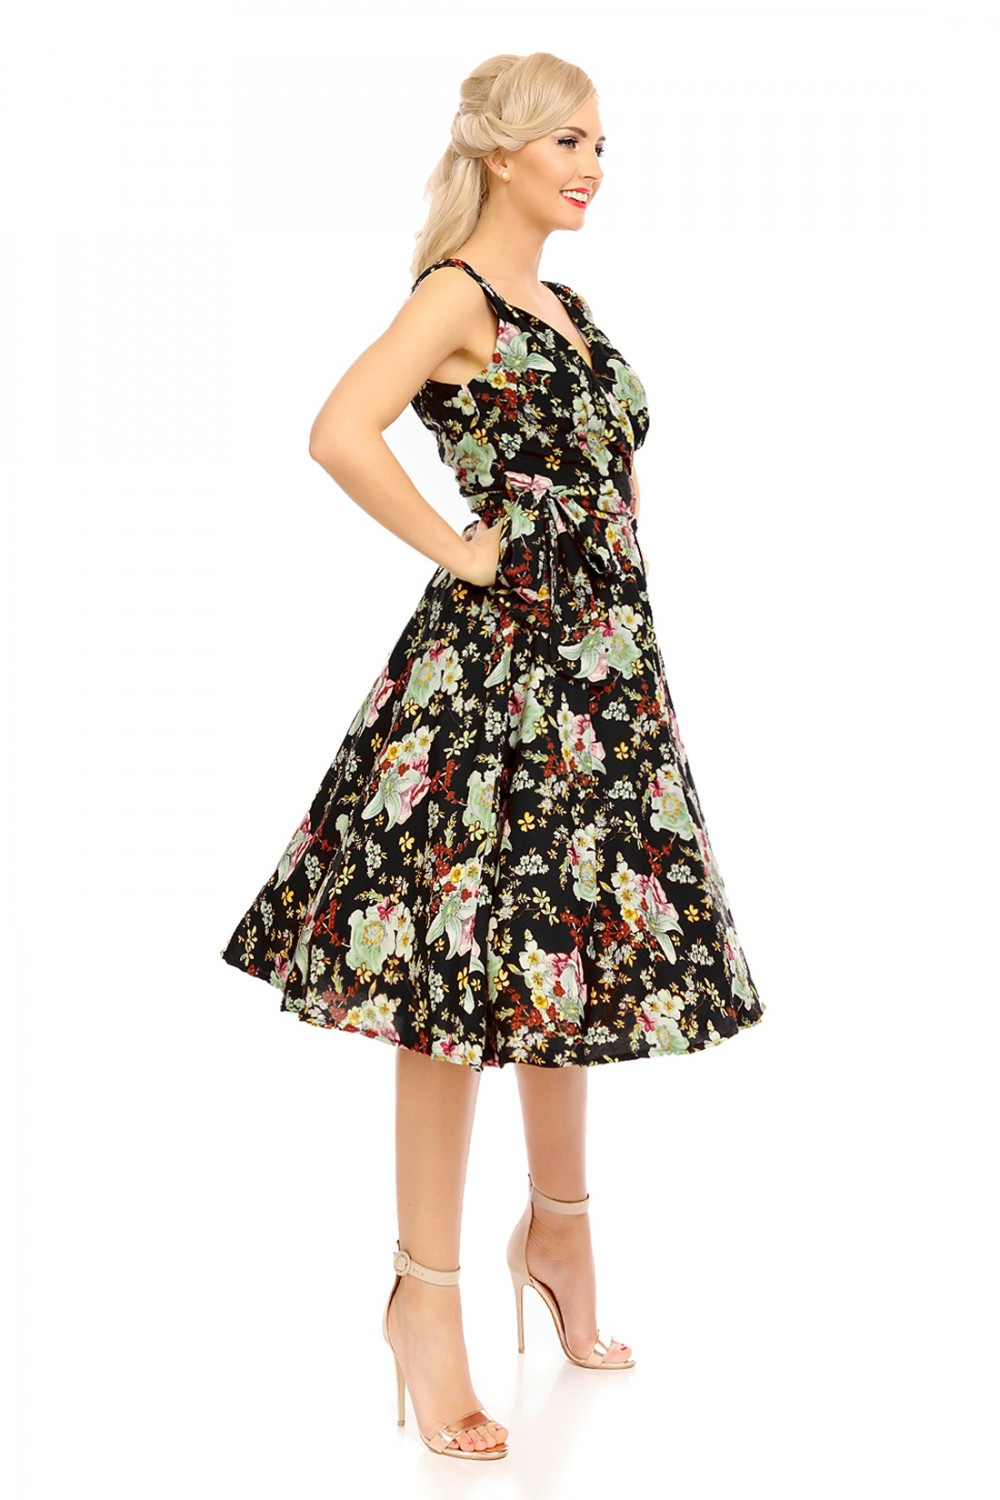 Retro Vintage 1950s Quot Marilyn Quot Pin Up Swing Dress